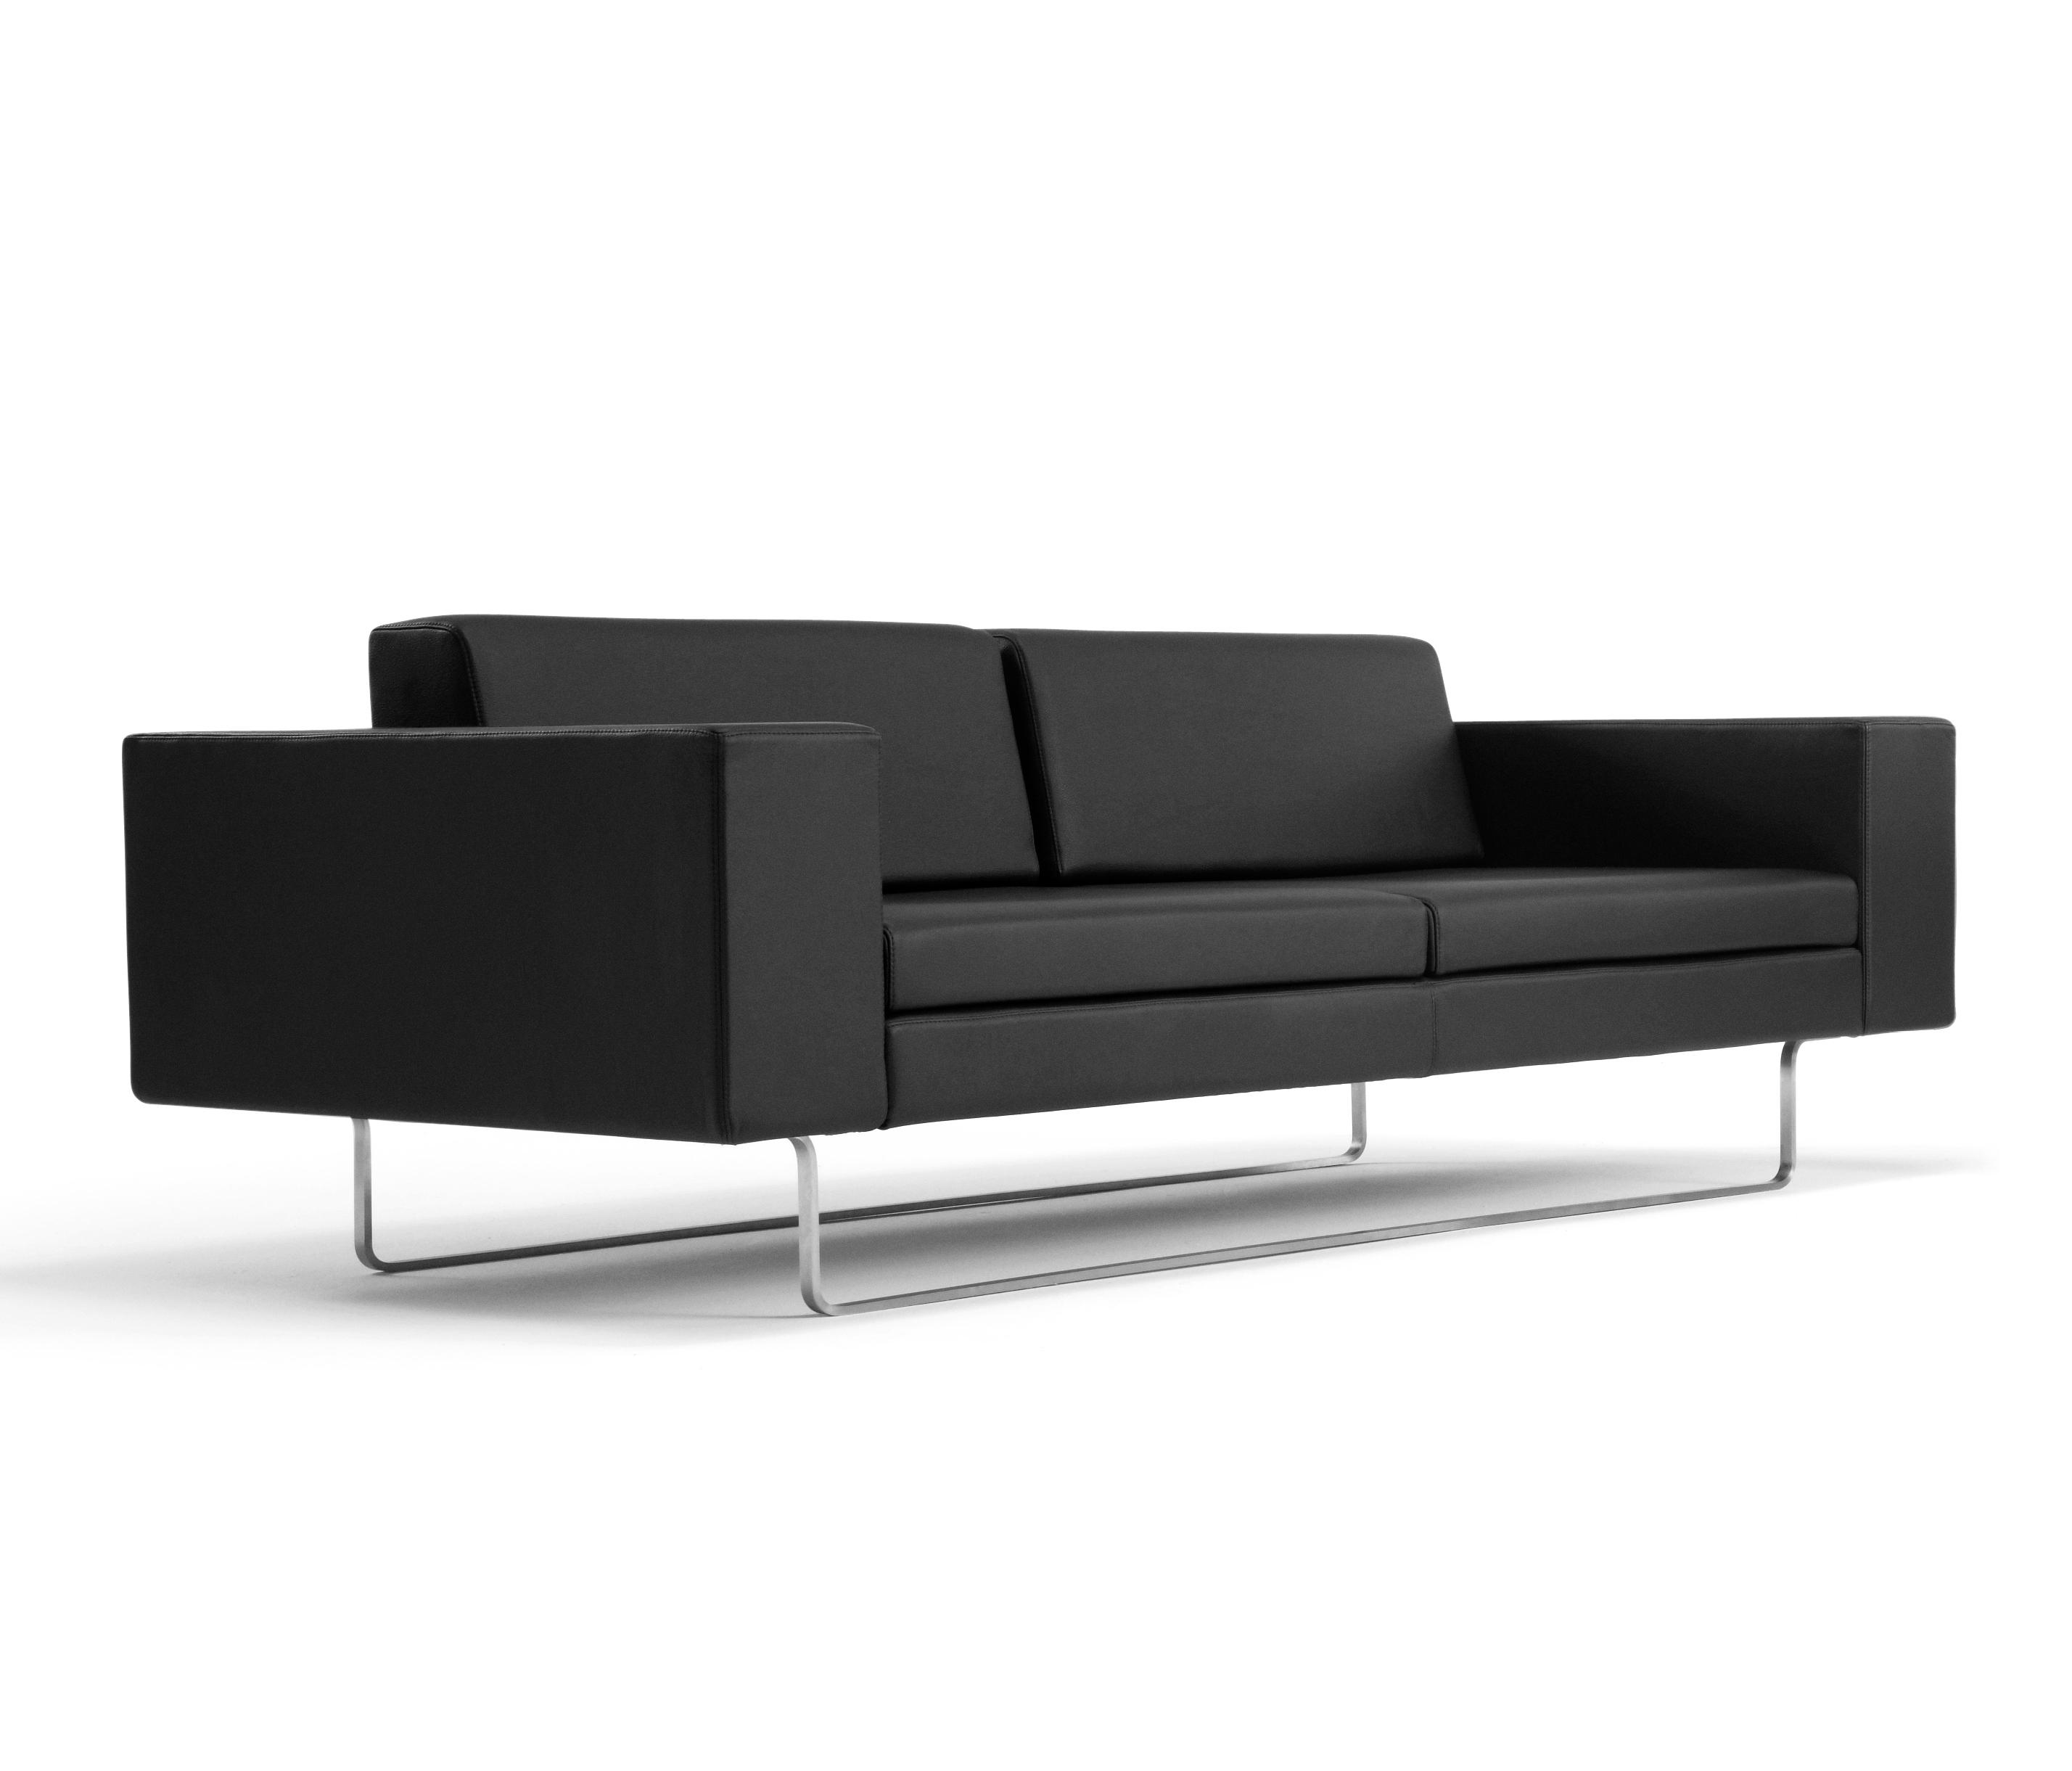 Low Cut Sofa By Halle Sofas